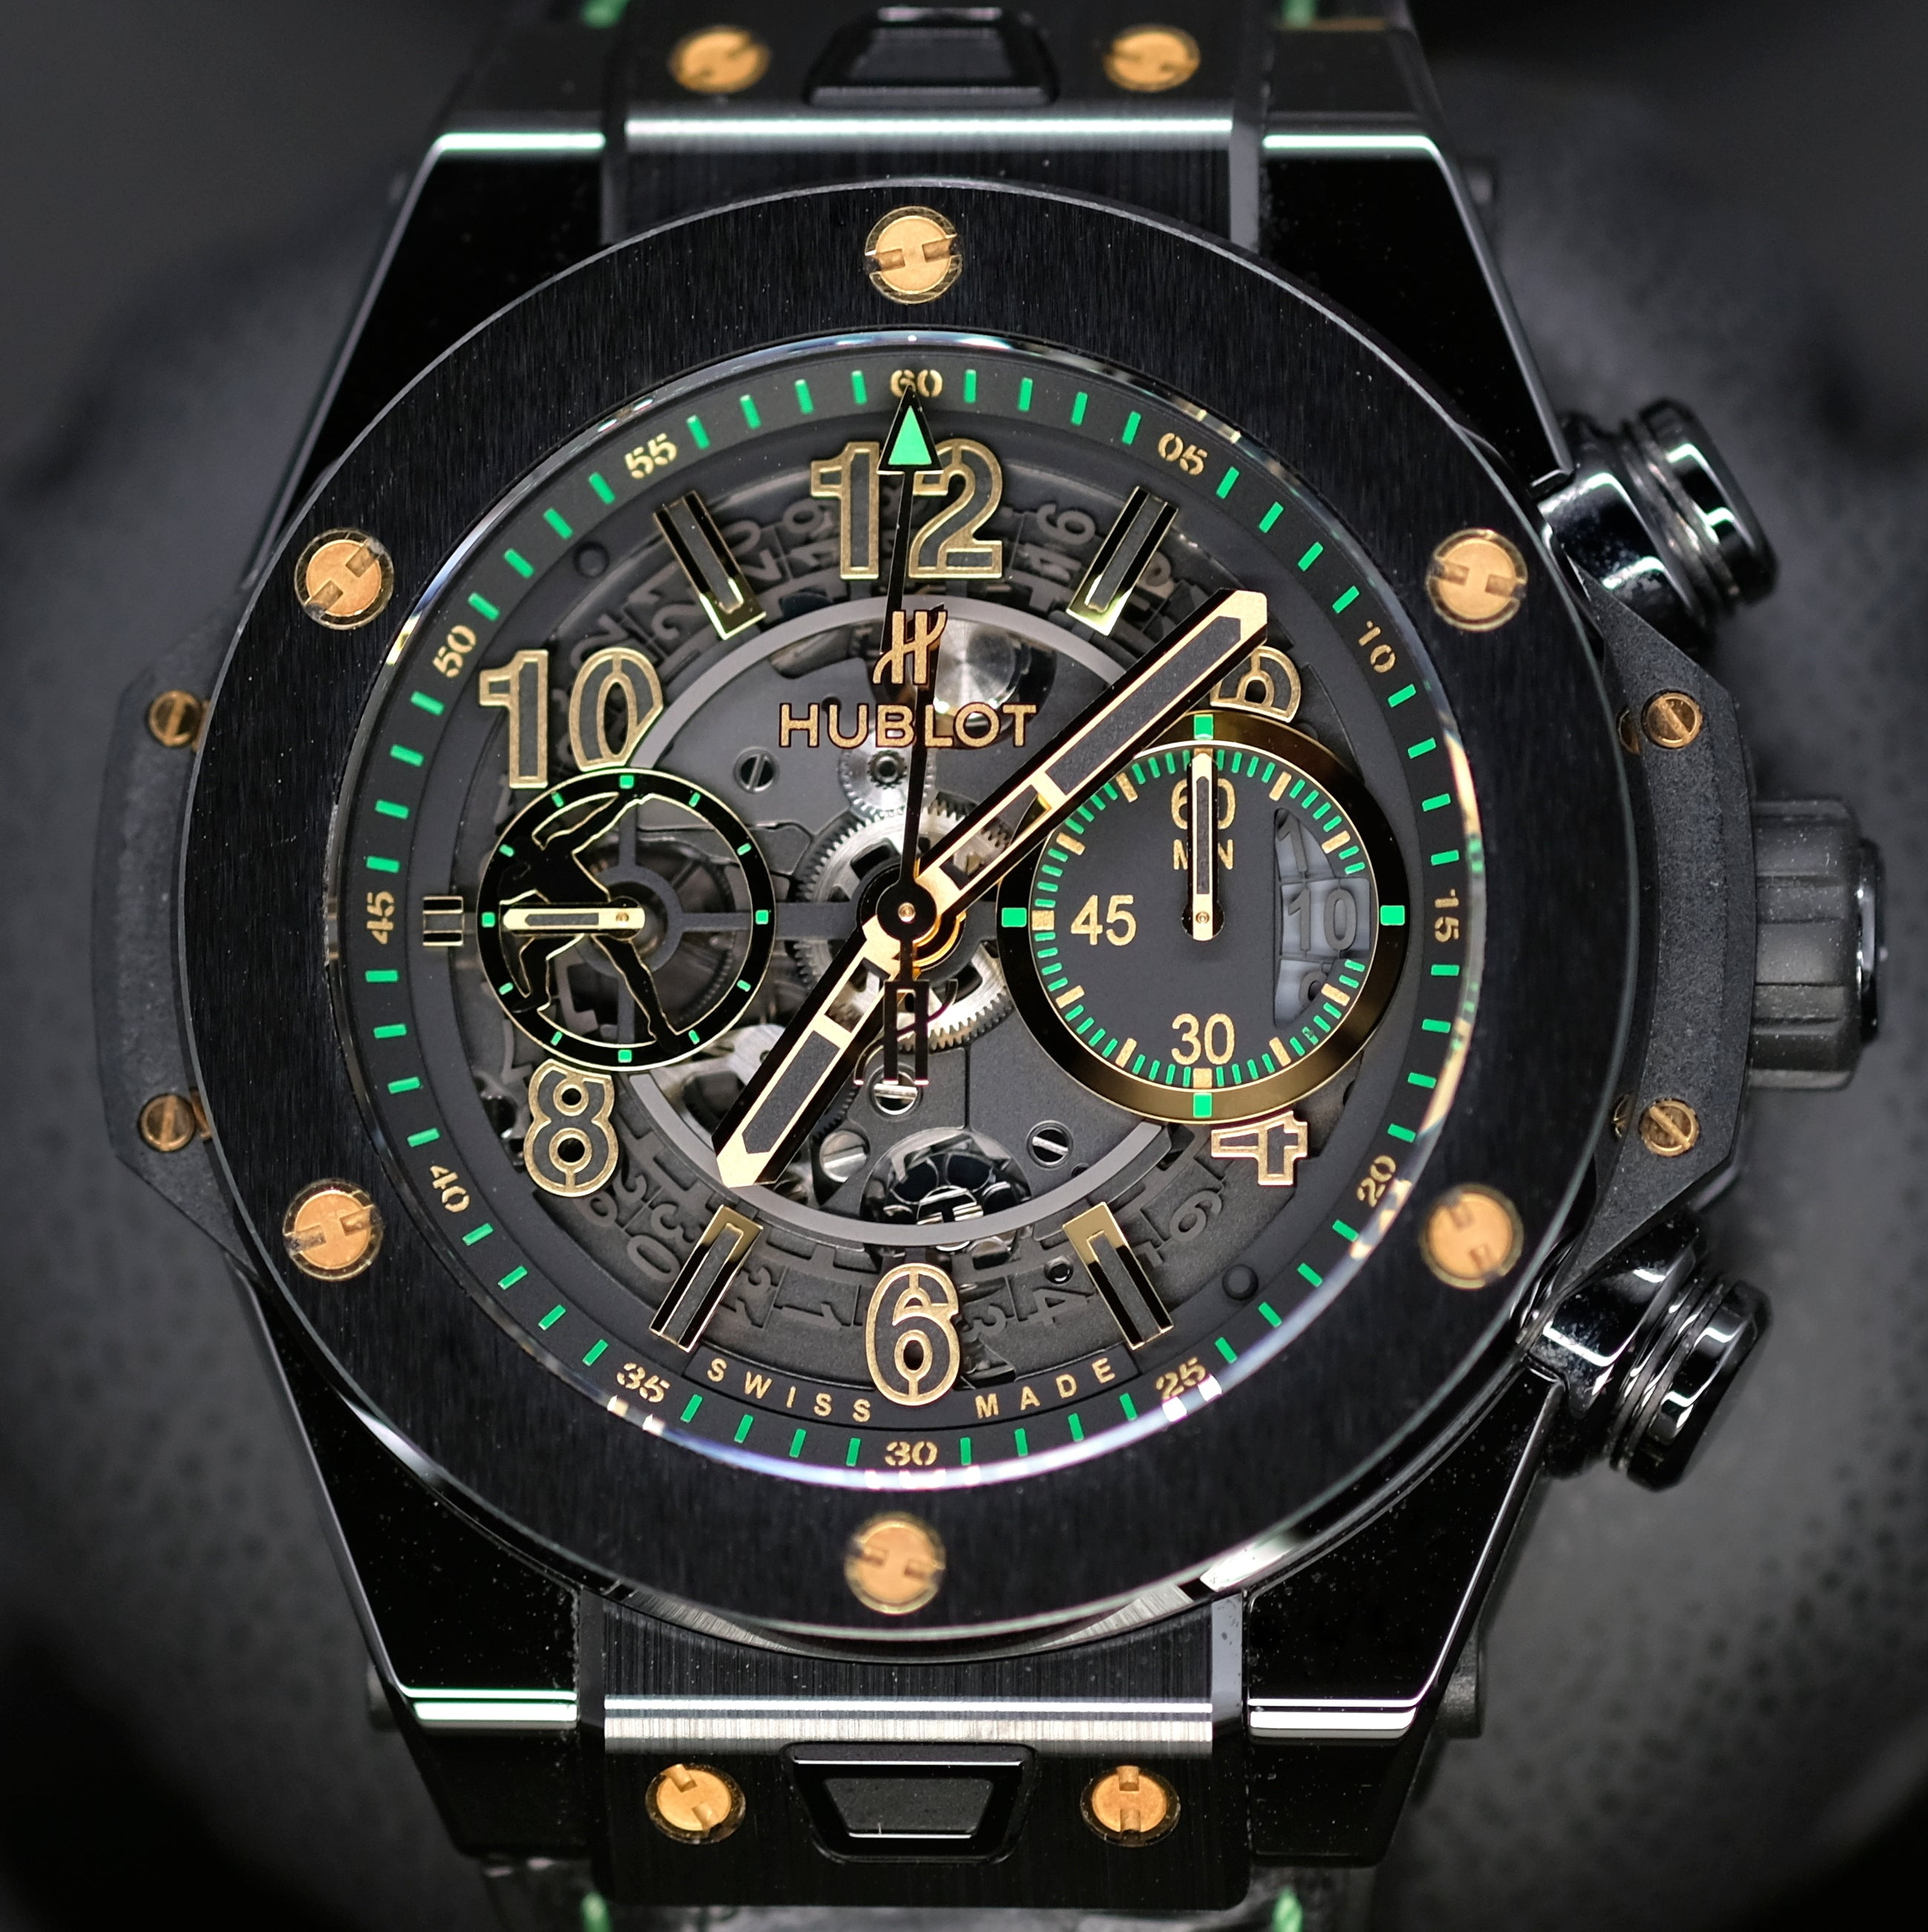 [Pre-Owned Watch] Hublot Big Bang Unico Ceramic Usain Bolt Limited Edition Watch 45mm 411.CX.1189.VR.USB16 (Limited Edition of 250 Pieces)